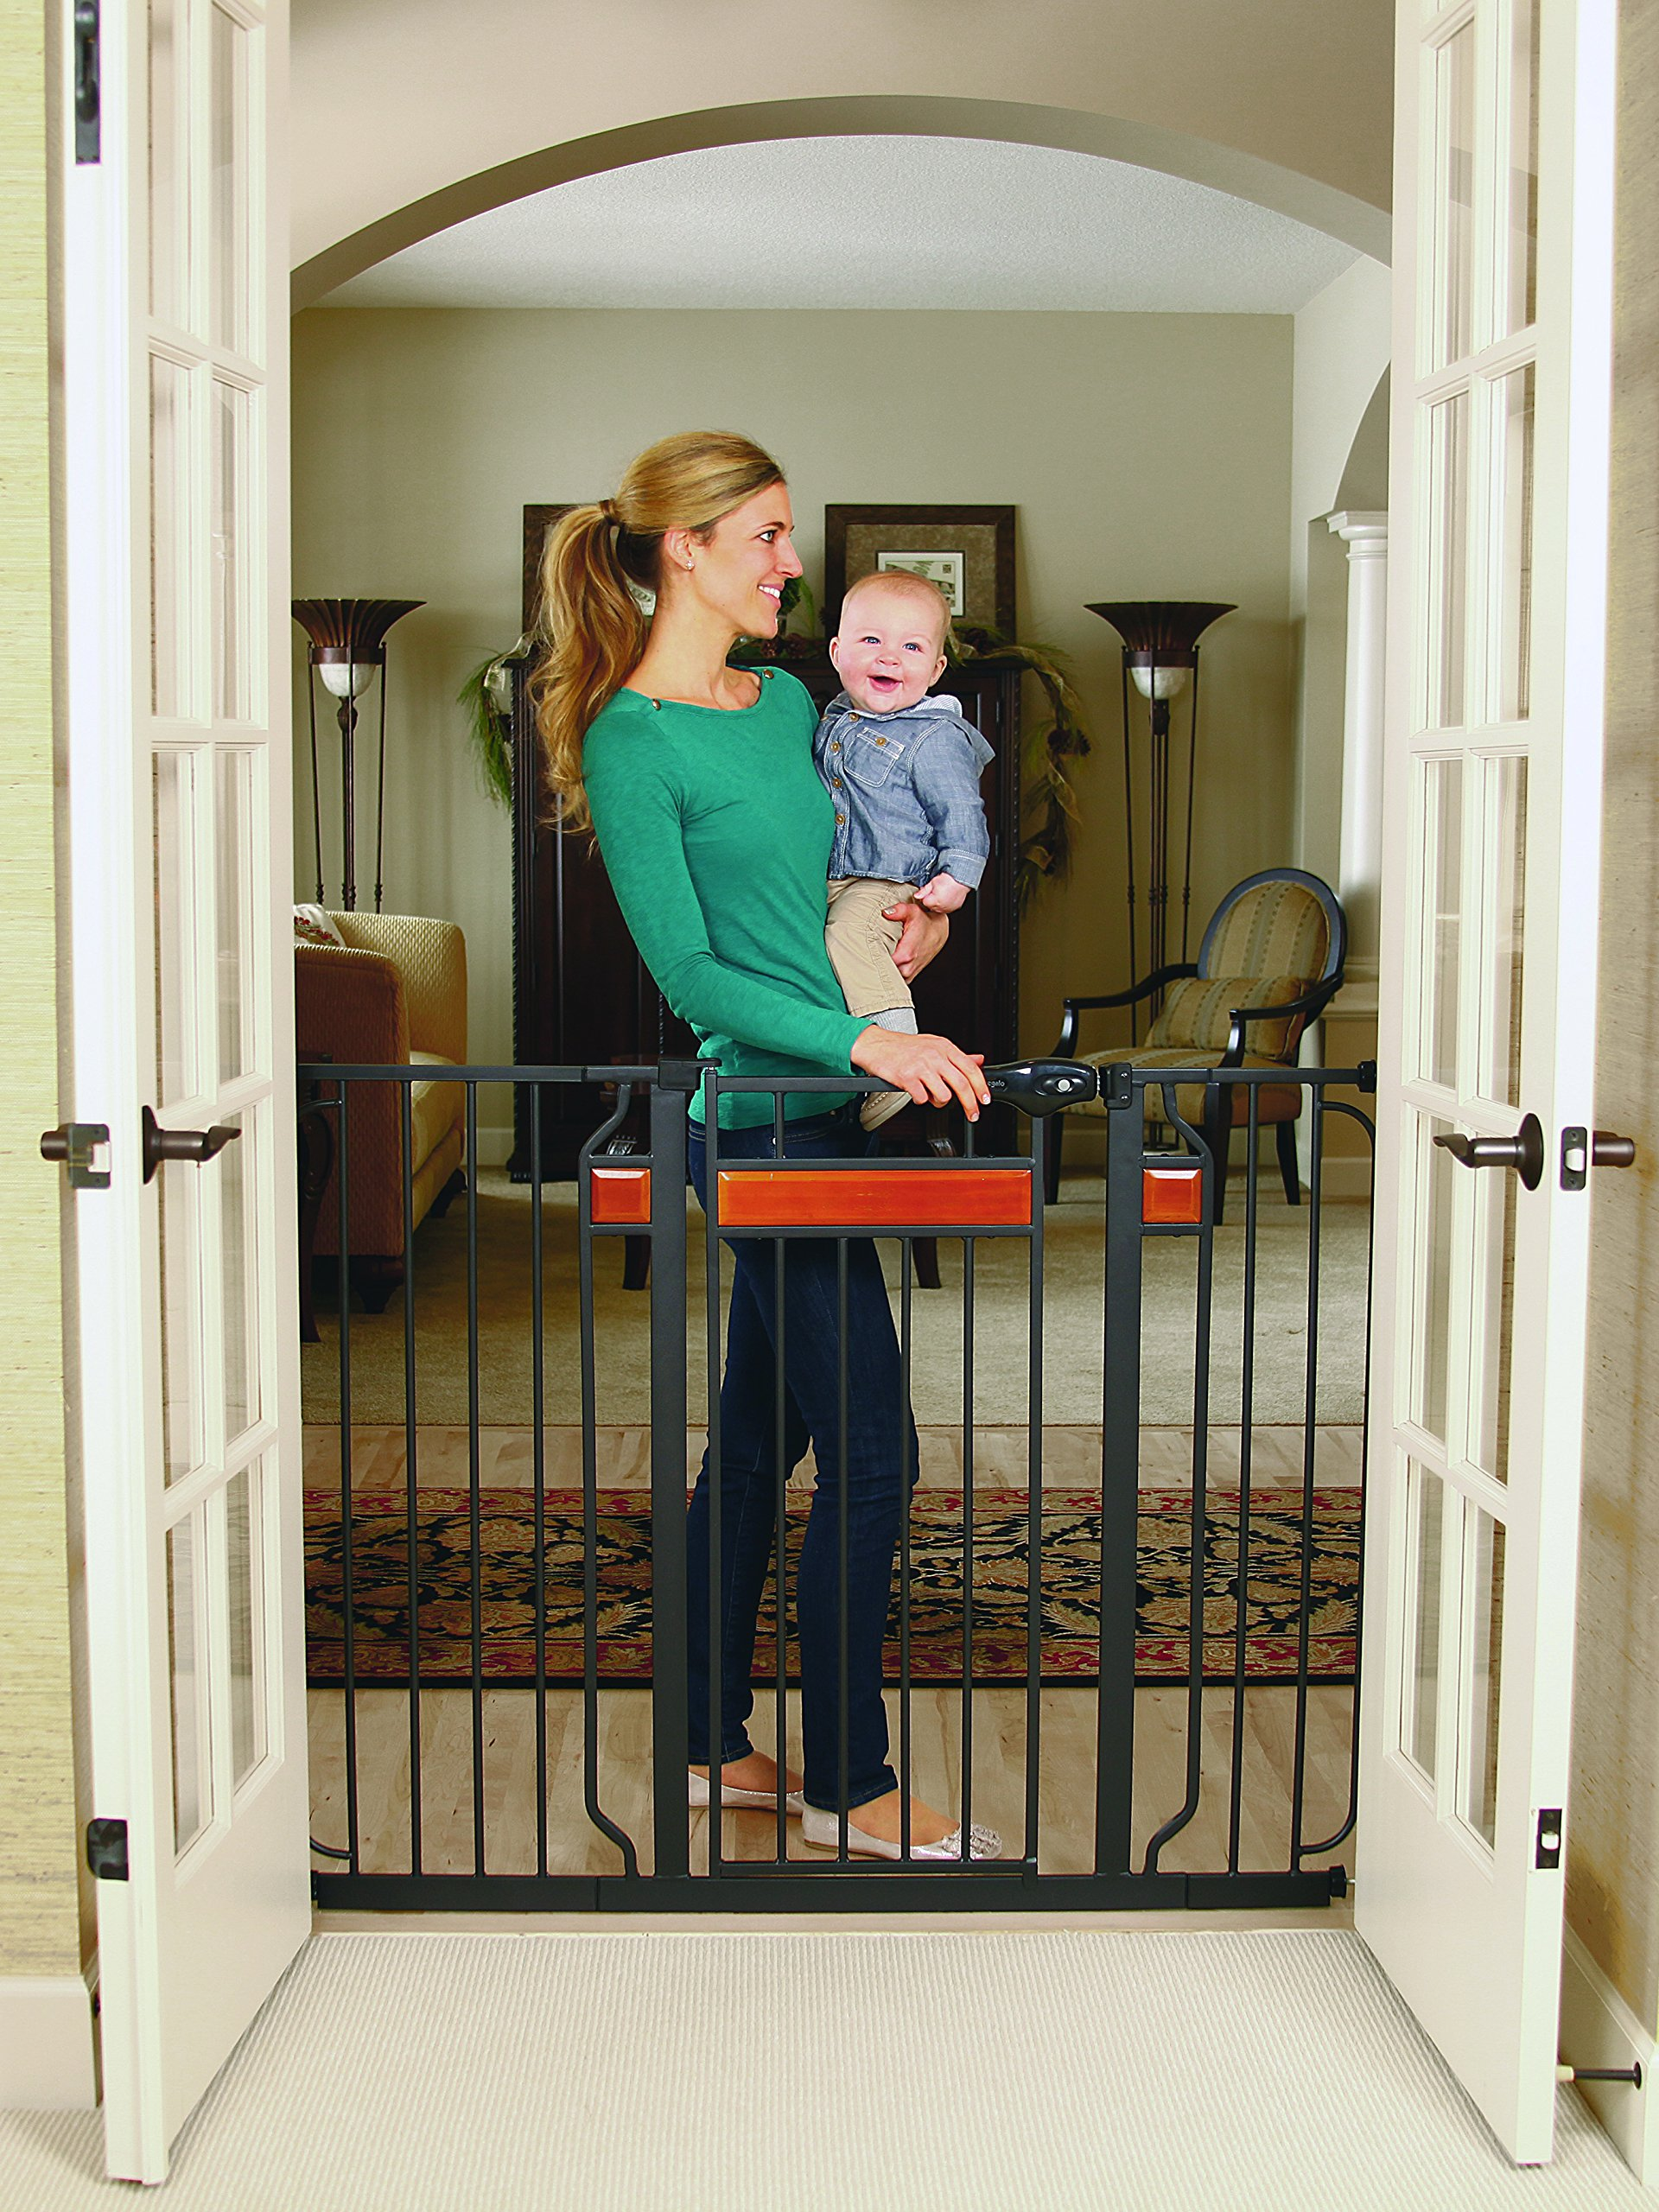 Regalo Home Accents Extra Tall and Wide Baby Gate, Bonus Kit, Includes Décor Hardwood, 4-Inch Extension Kit, 4-Inch Extension Kit, 4 Pack Pressure Mount Kit and 4 Pack Wall Cups and Mounting Kit by Regalo